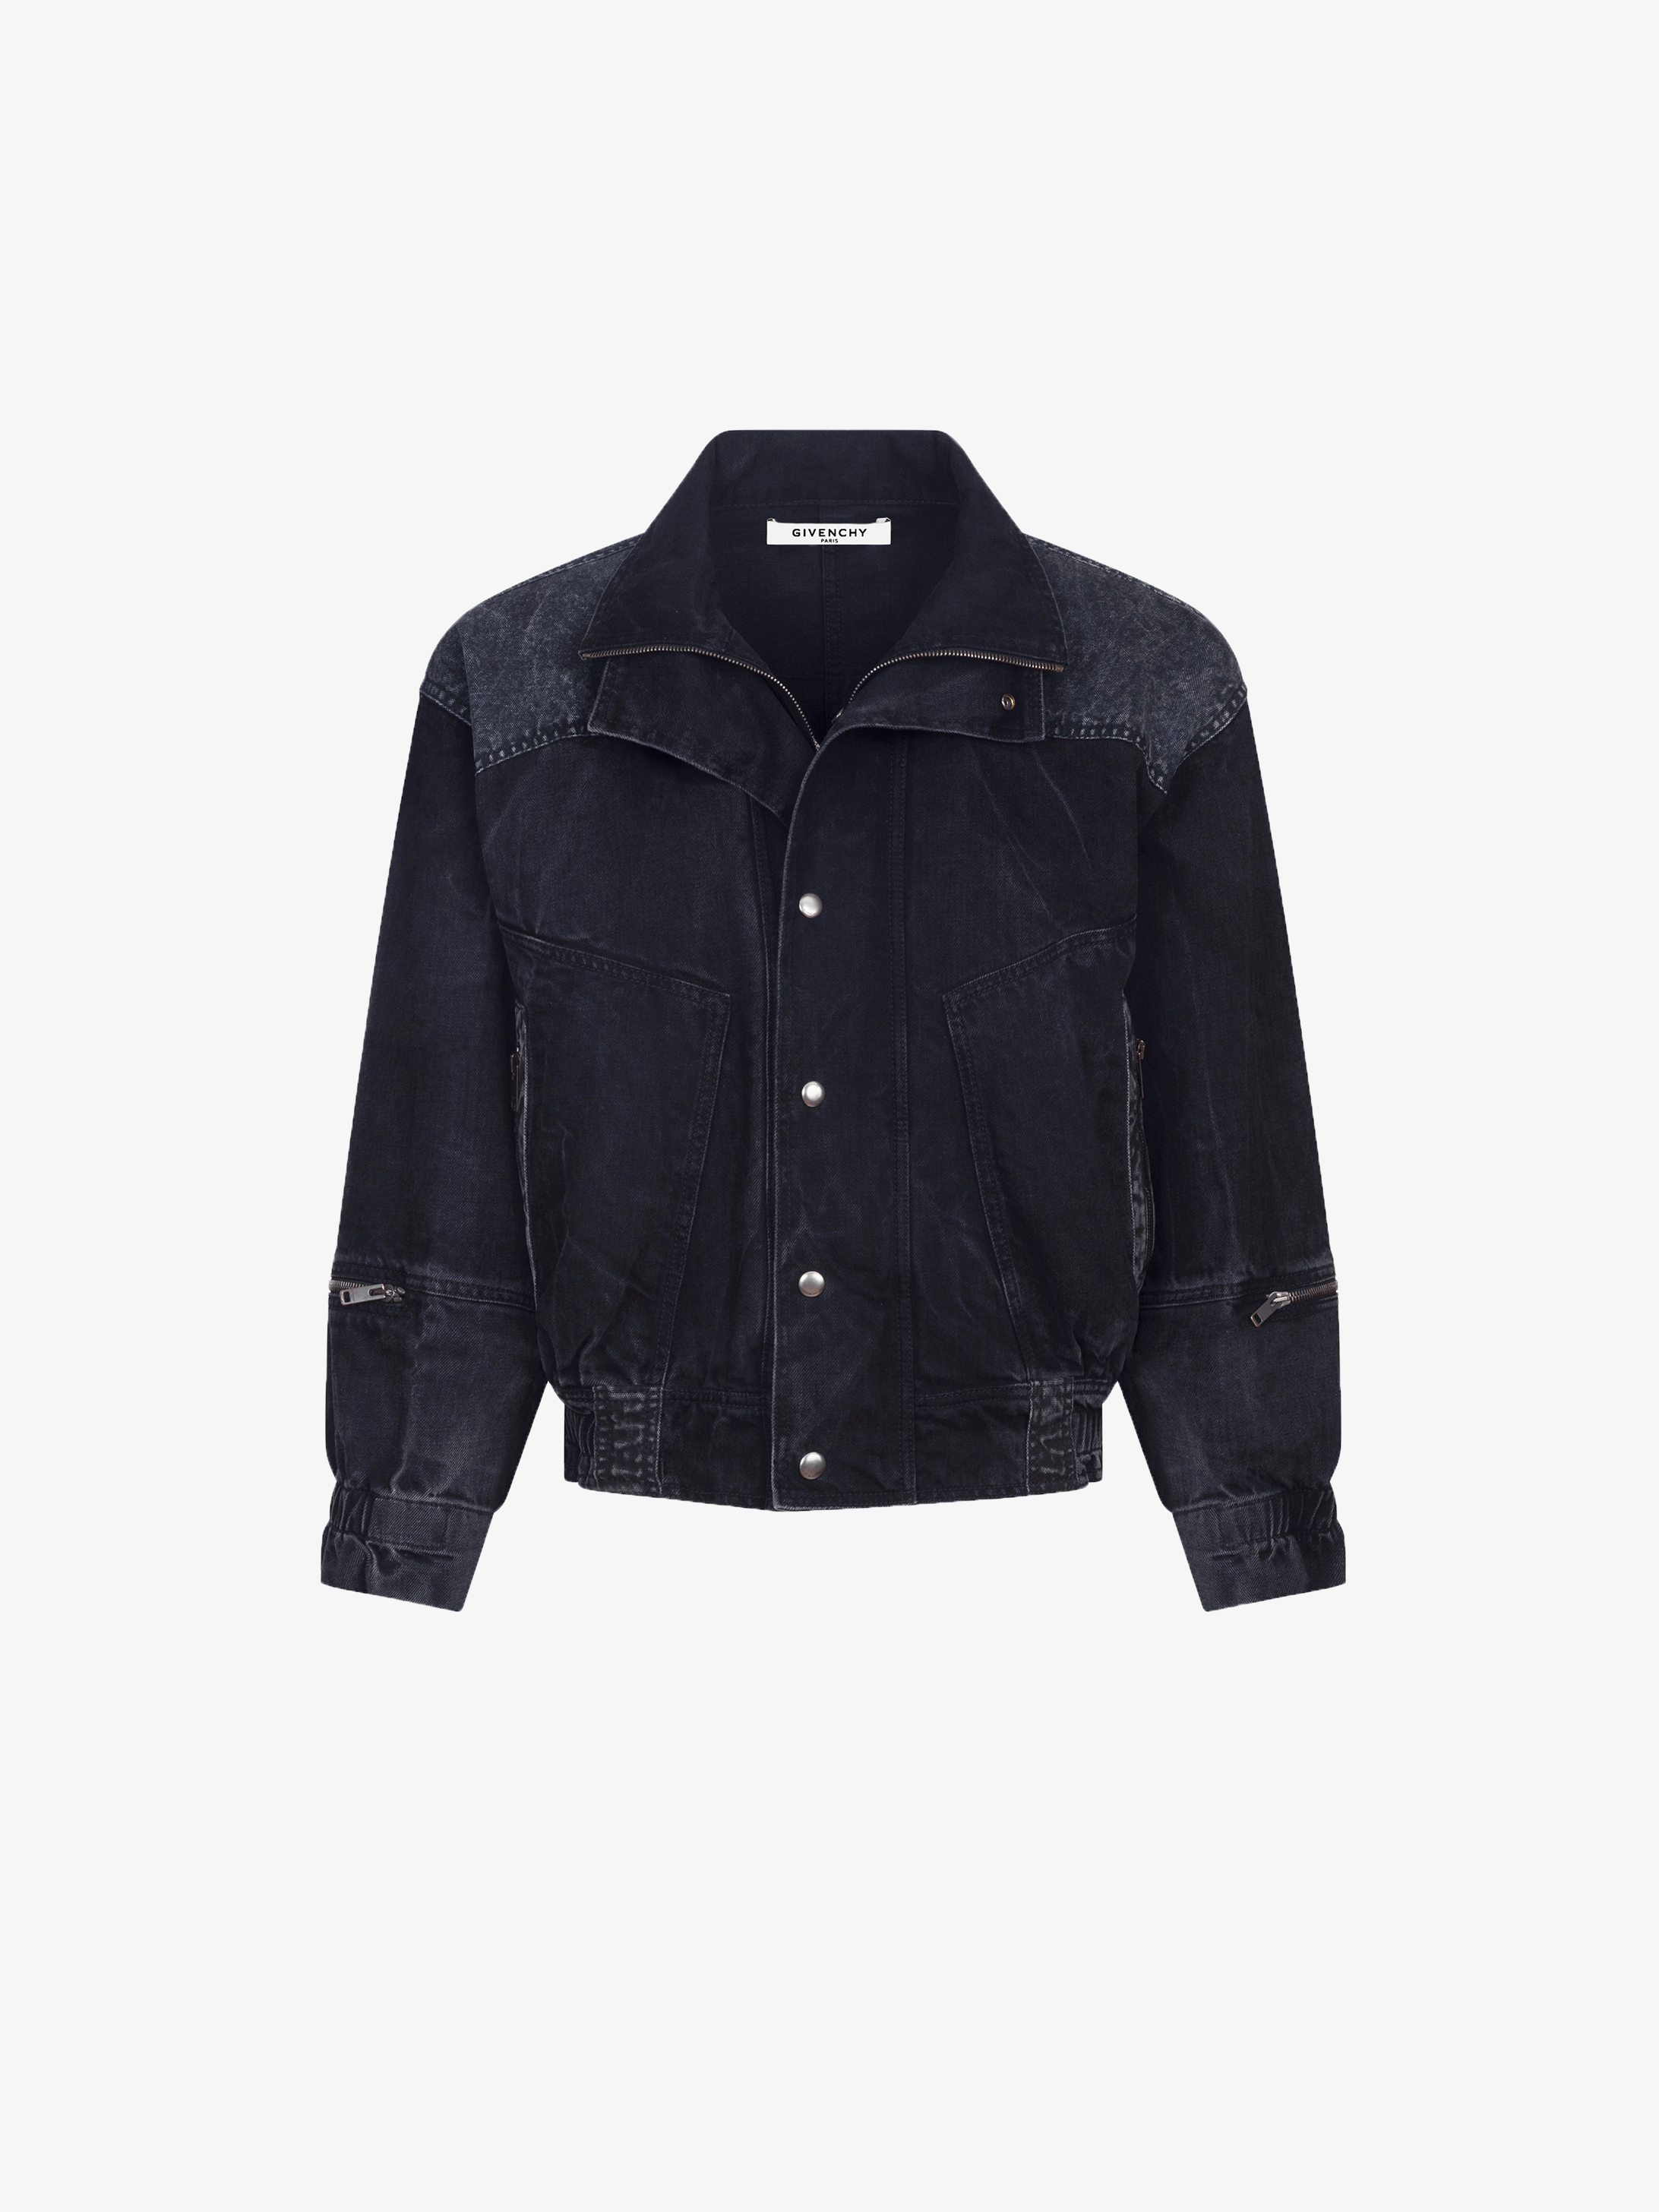 Oversized jacket with double collar